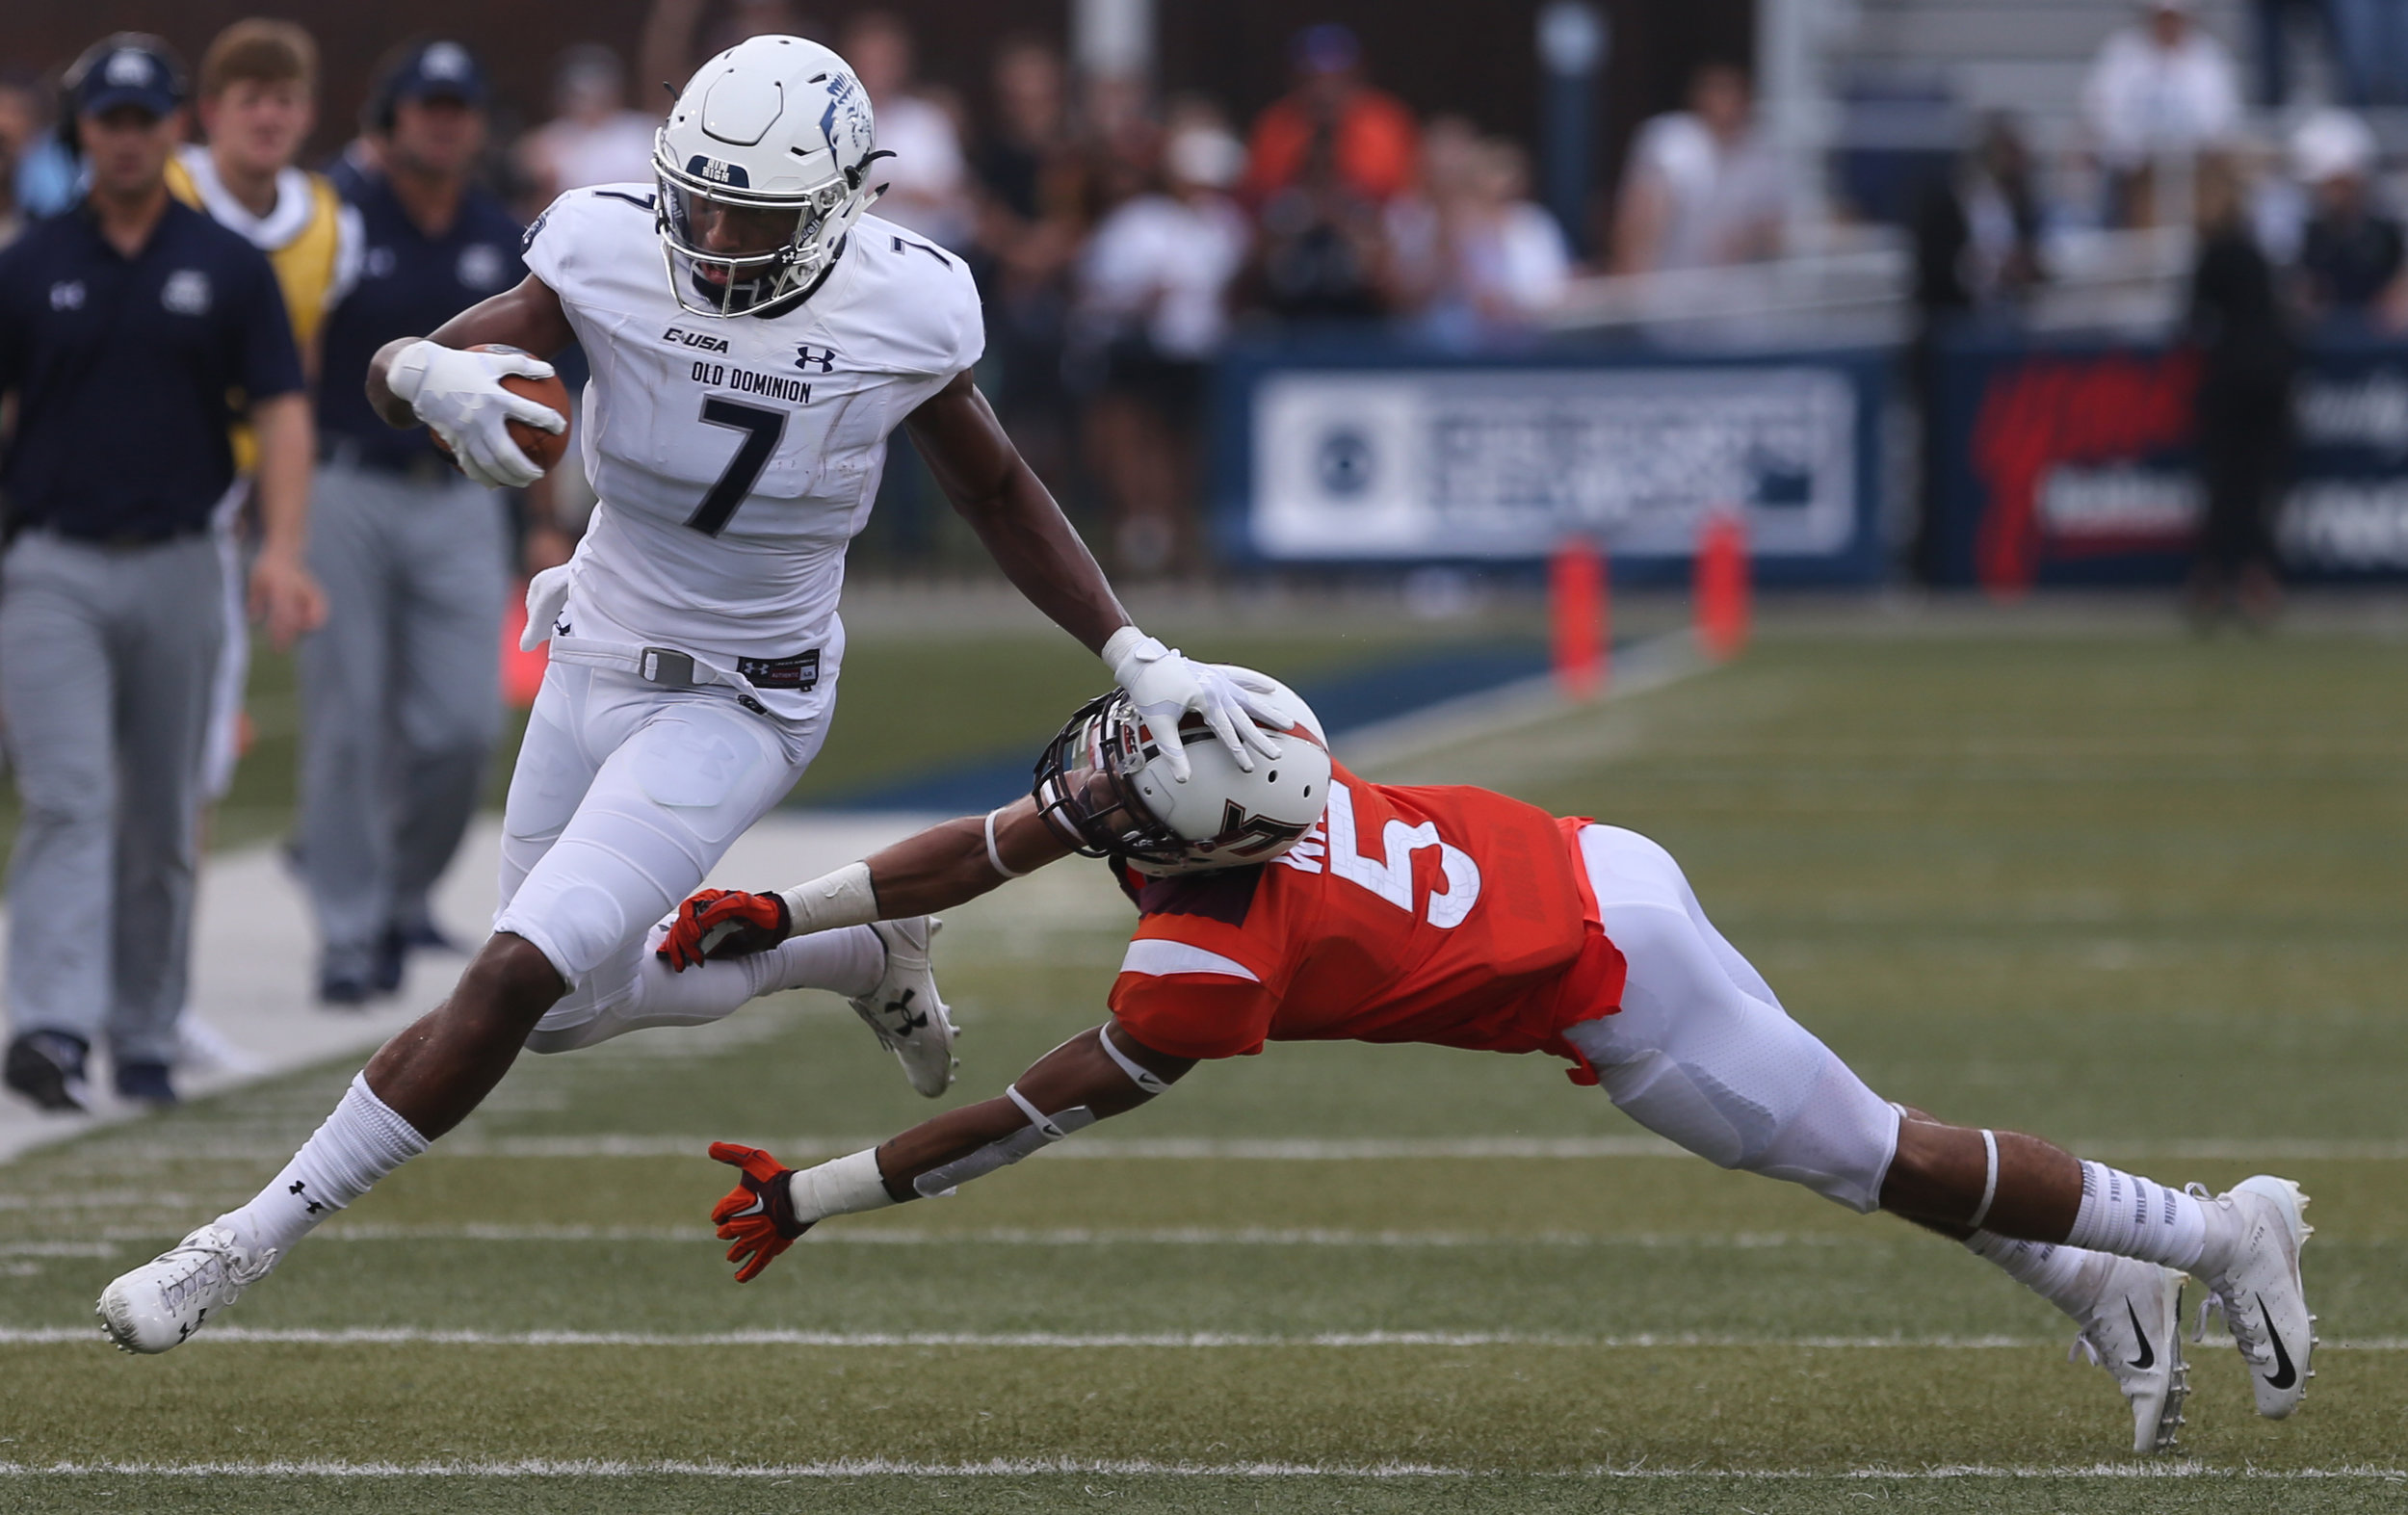 Old Dominion's Travis Fulgham, left, stiff arms Virginia Tech's Bryce Watts during the second half of an NCAA college football game, Saturday, Sept. 22, 2018, in Norfolk, Va. Old Dominion won 49-35. (AP Photo/Jason Hirschfeld)